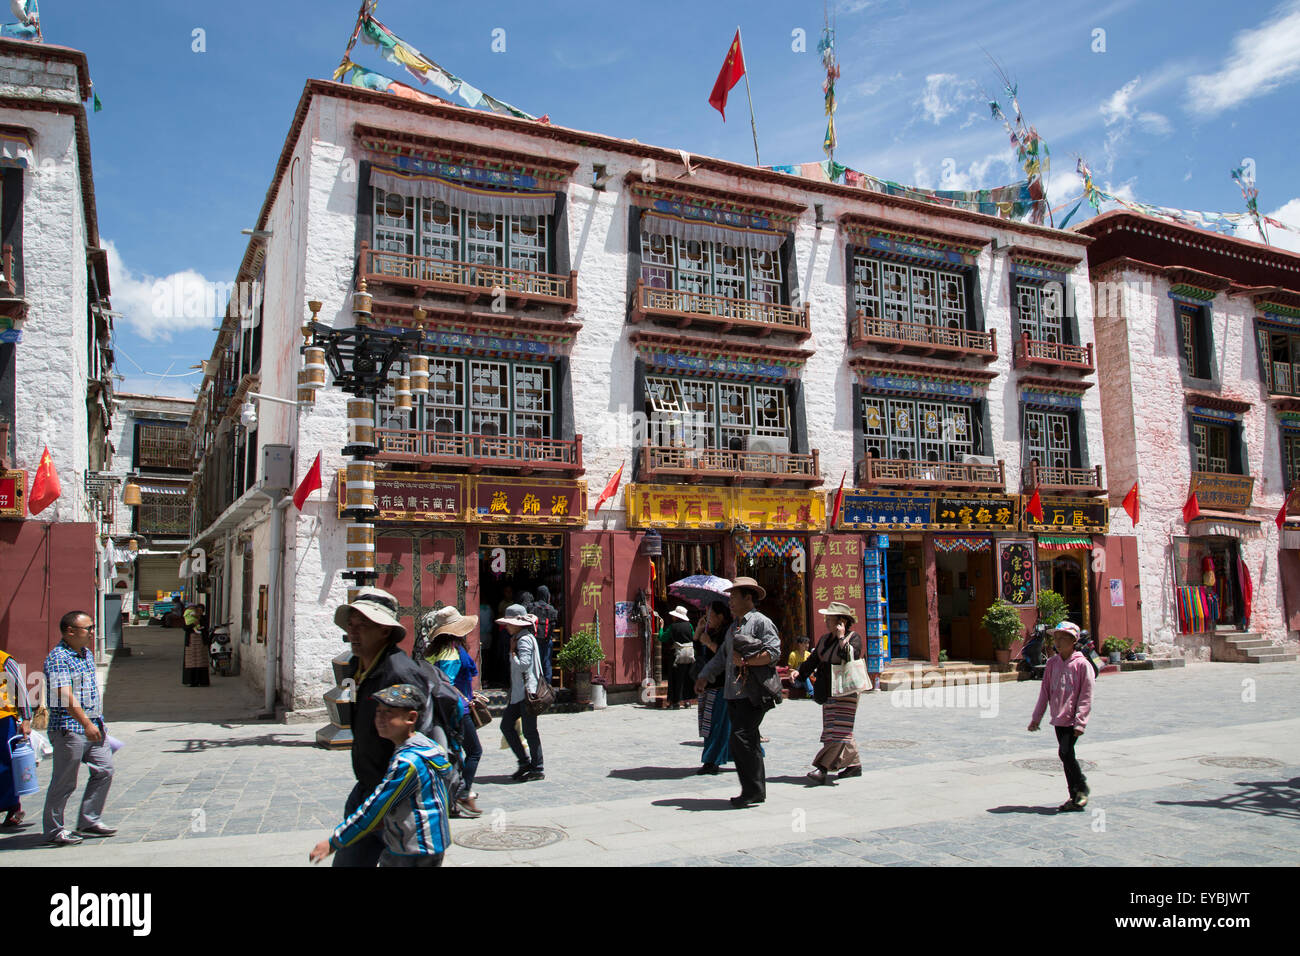 A building in Lhasa old town on a sunny day. - Stock Image